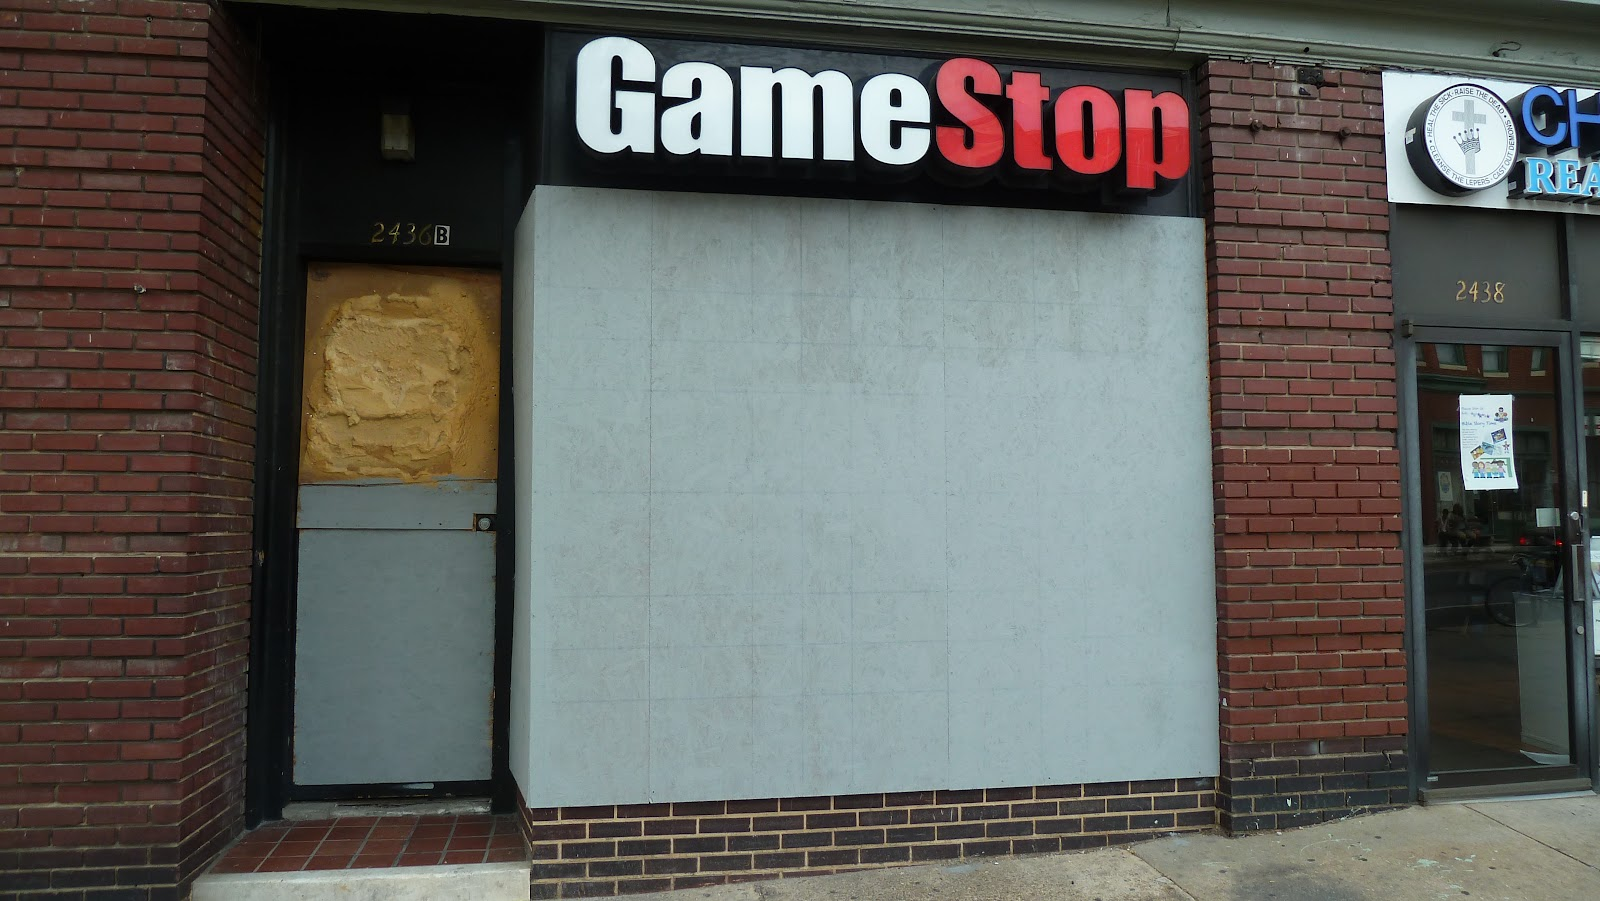 A Gamestop location closed after rioting